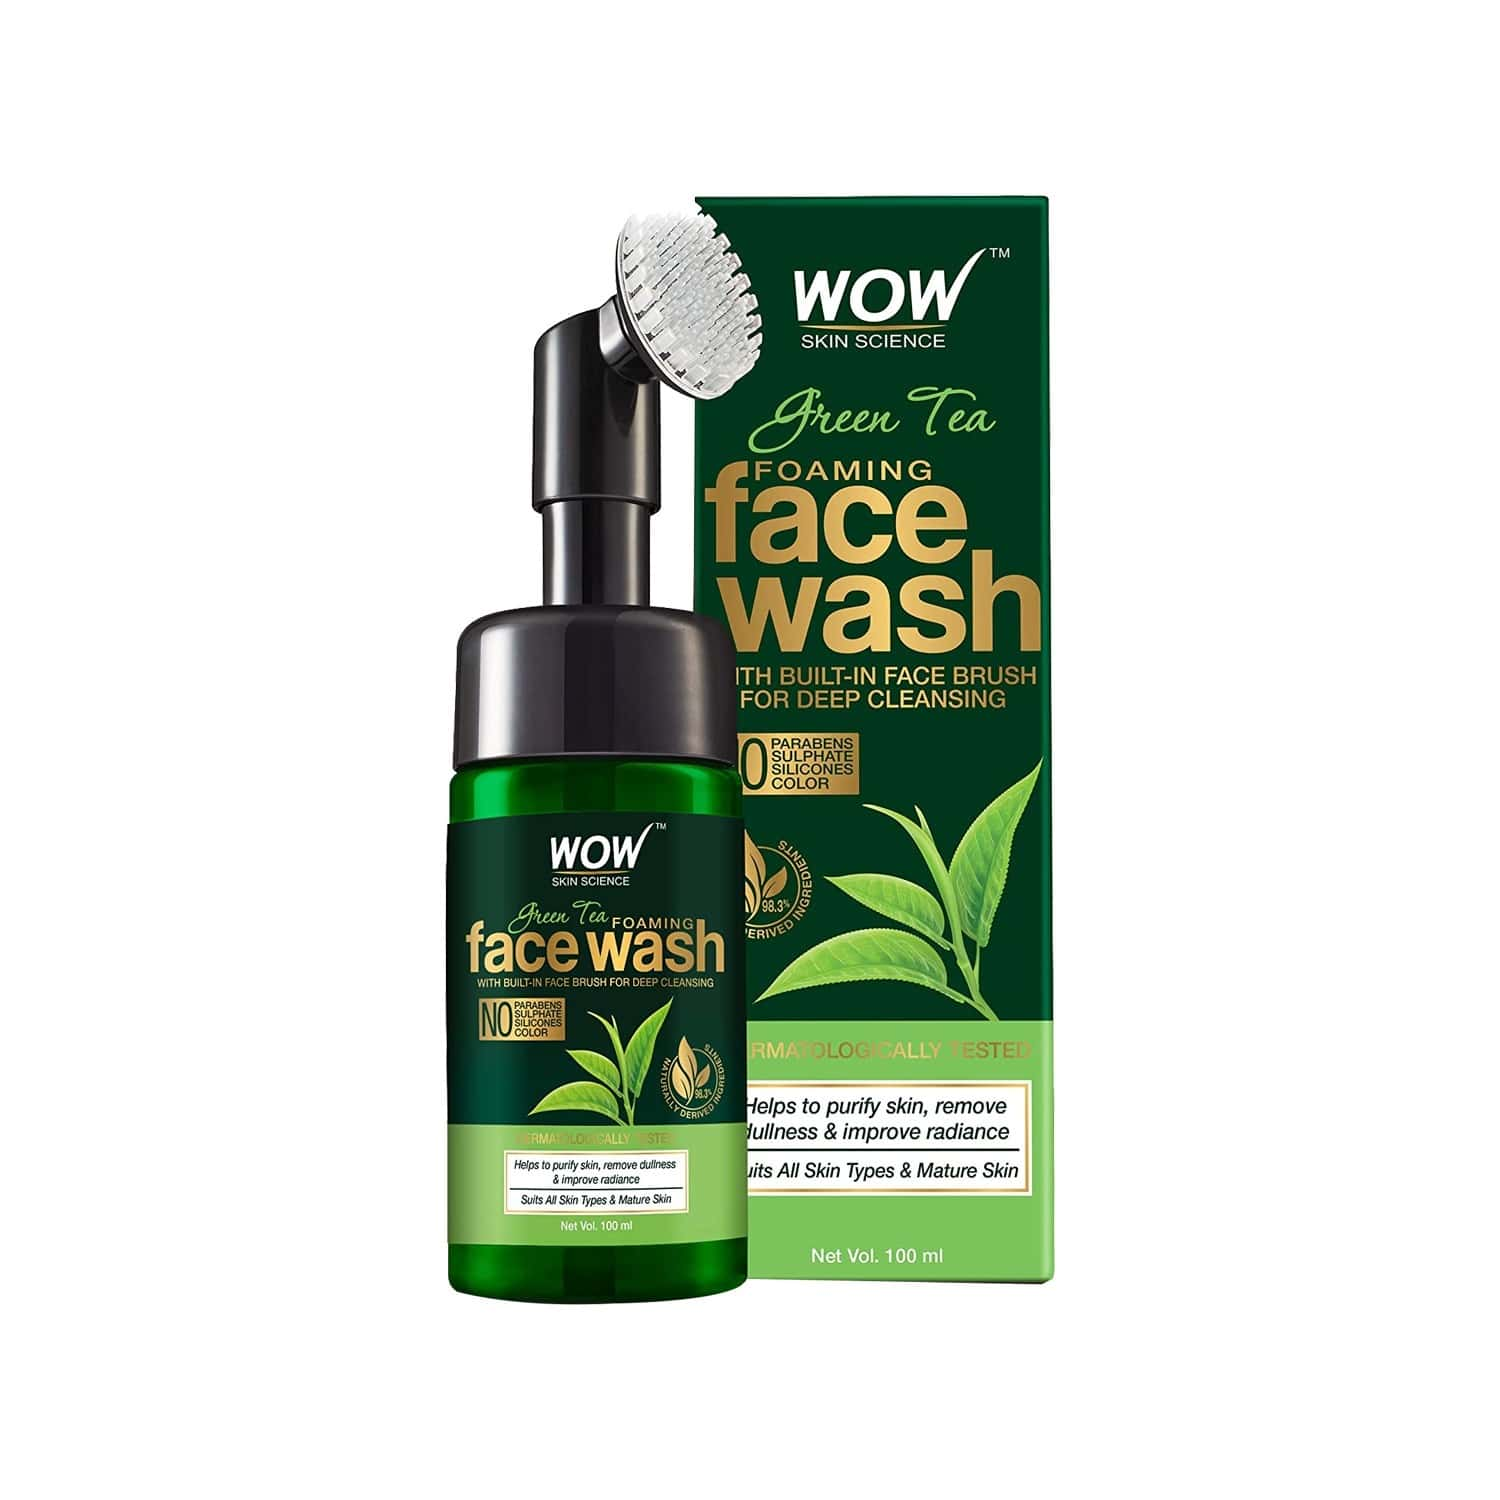 Wow Skin Science Green Tea Foaming Face Wash With Built-in Face Brush - 100 Ml